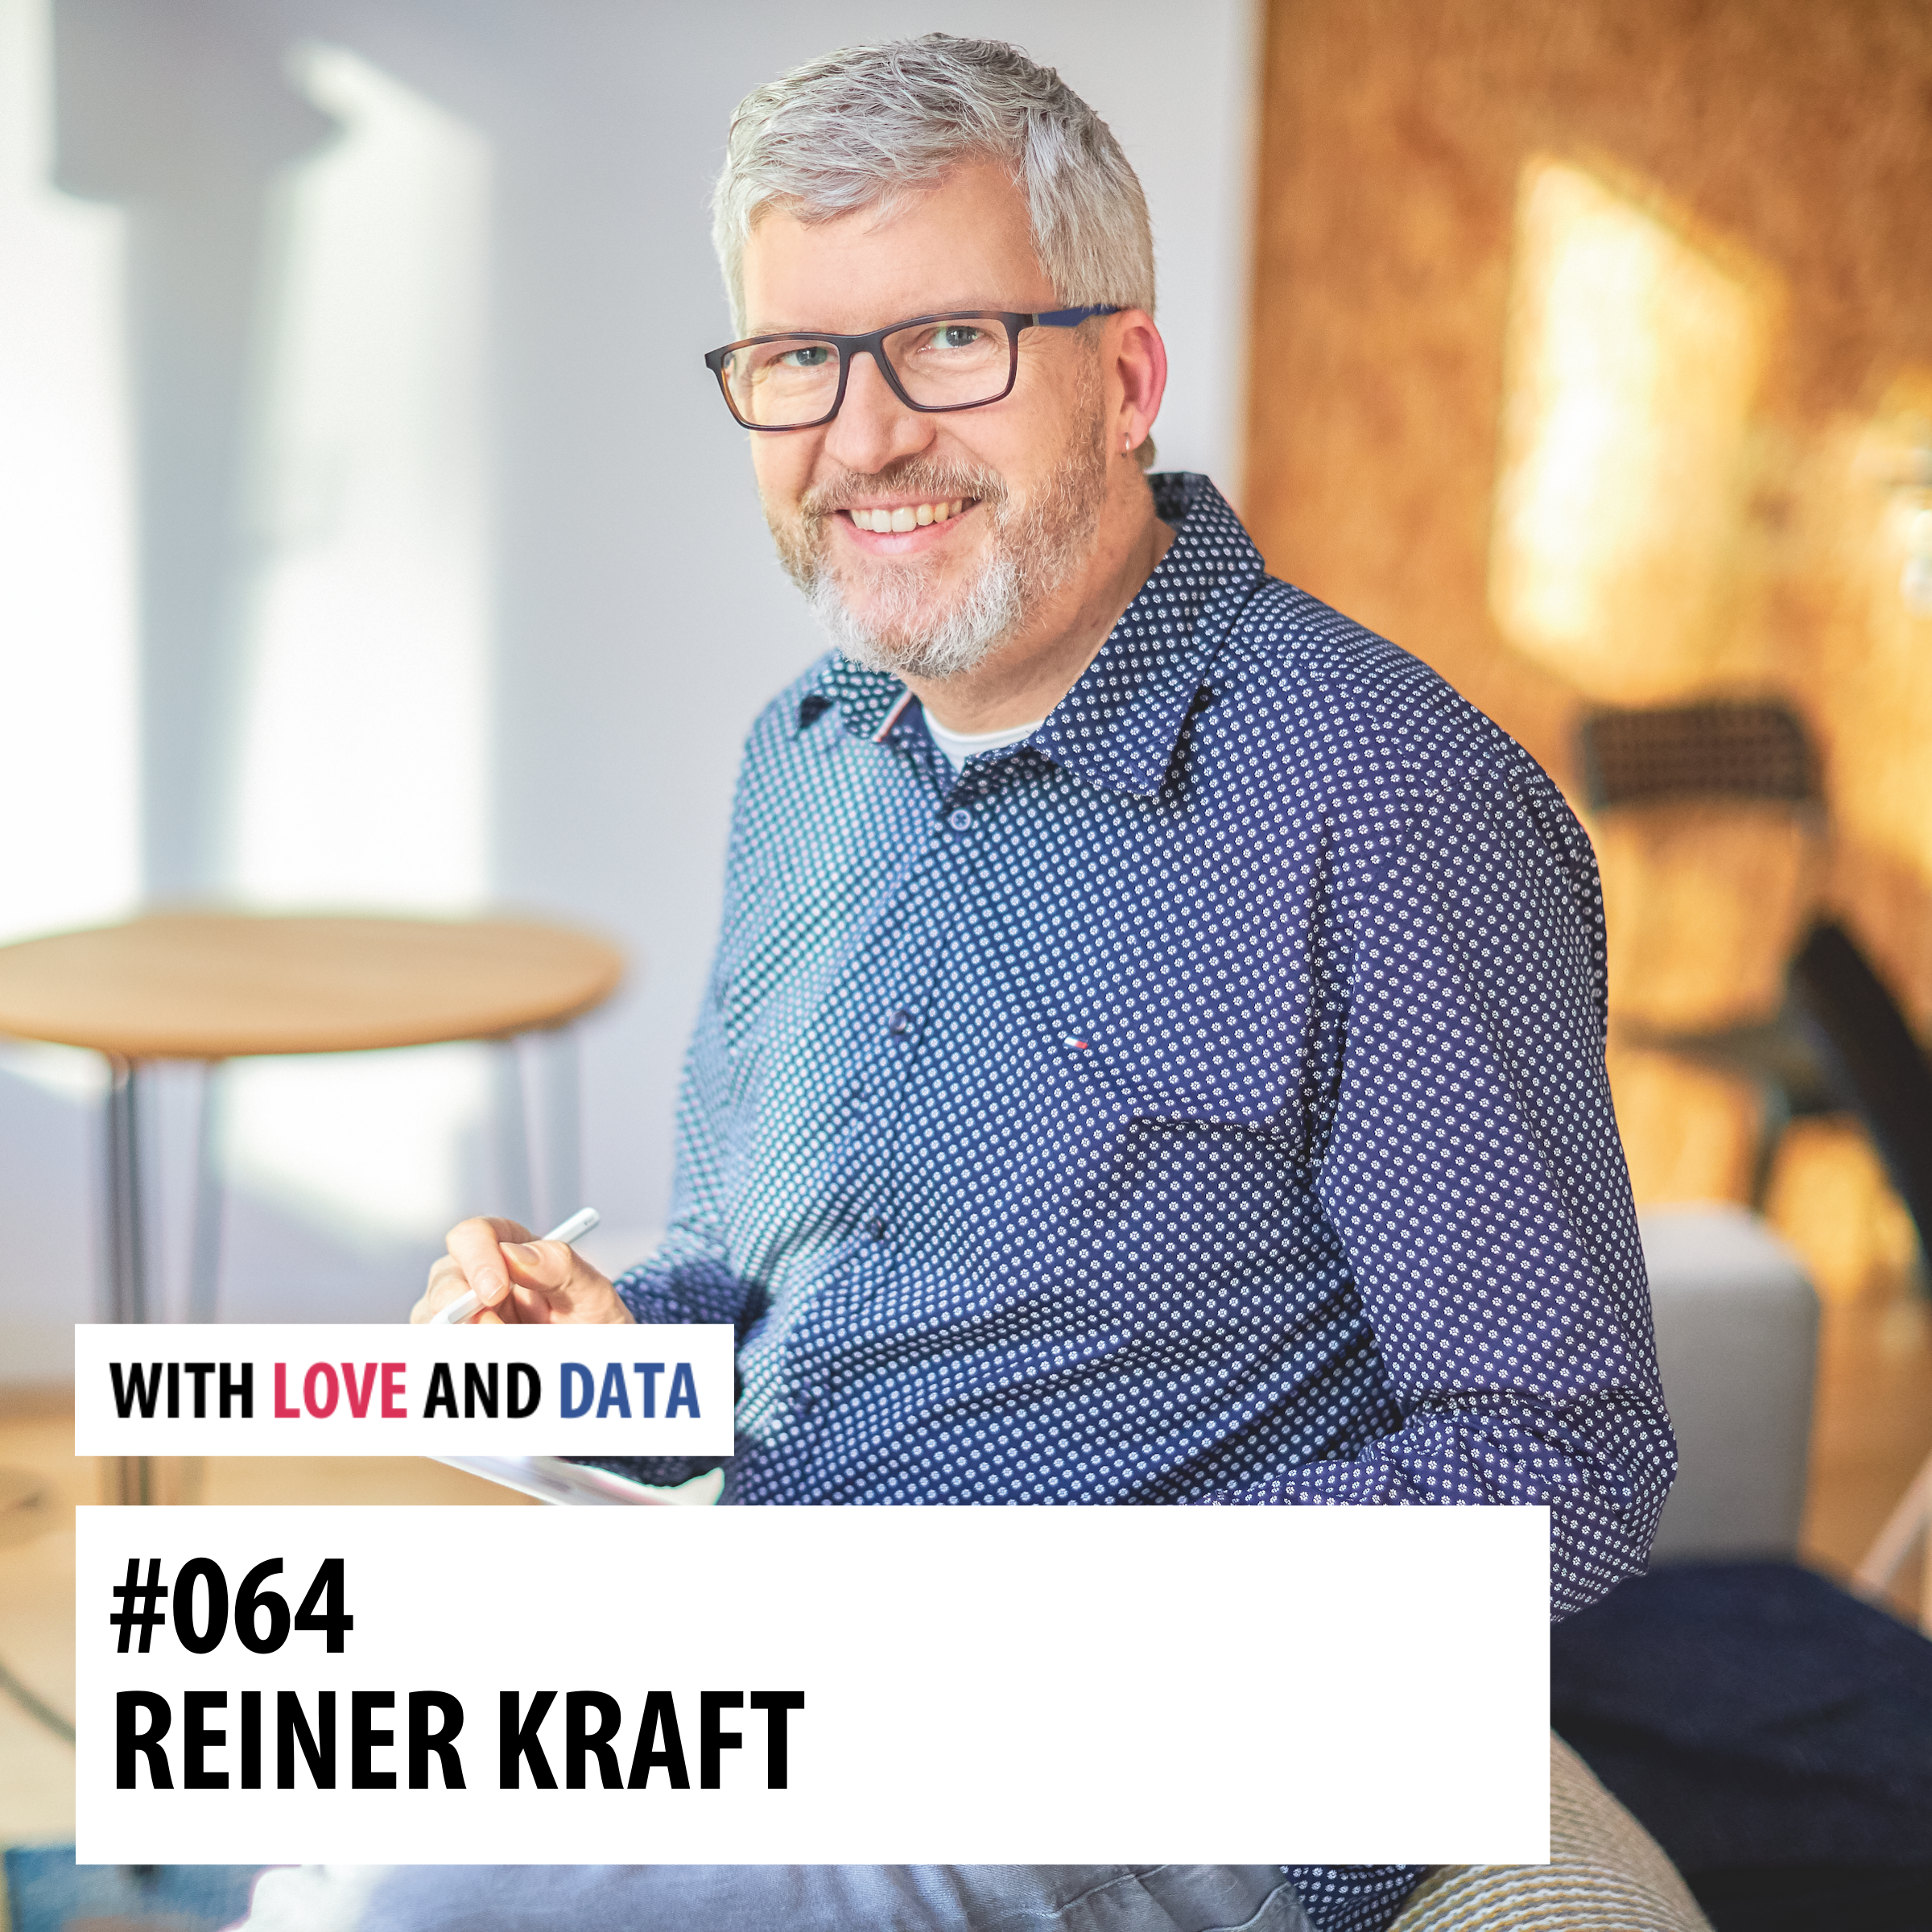 reiner-kraft-with-love-and-data